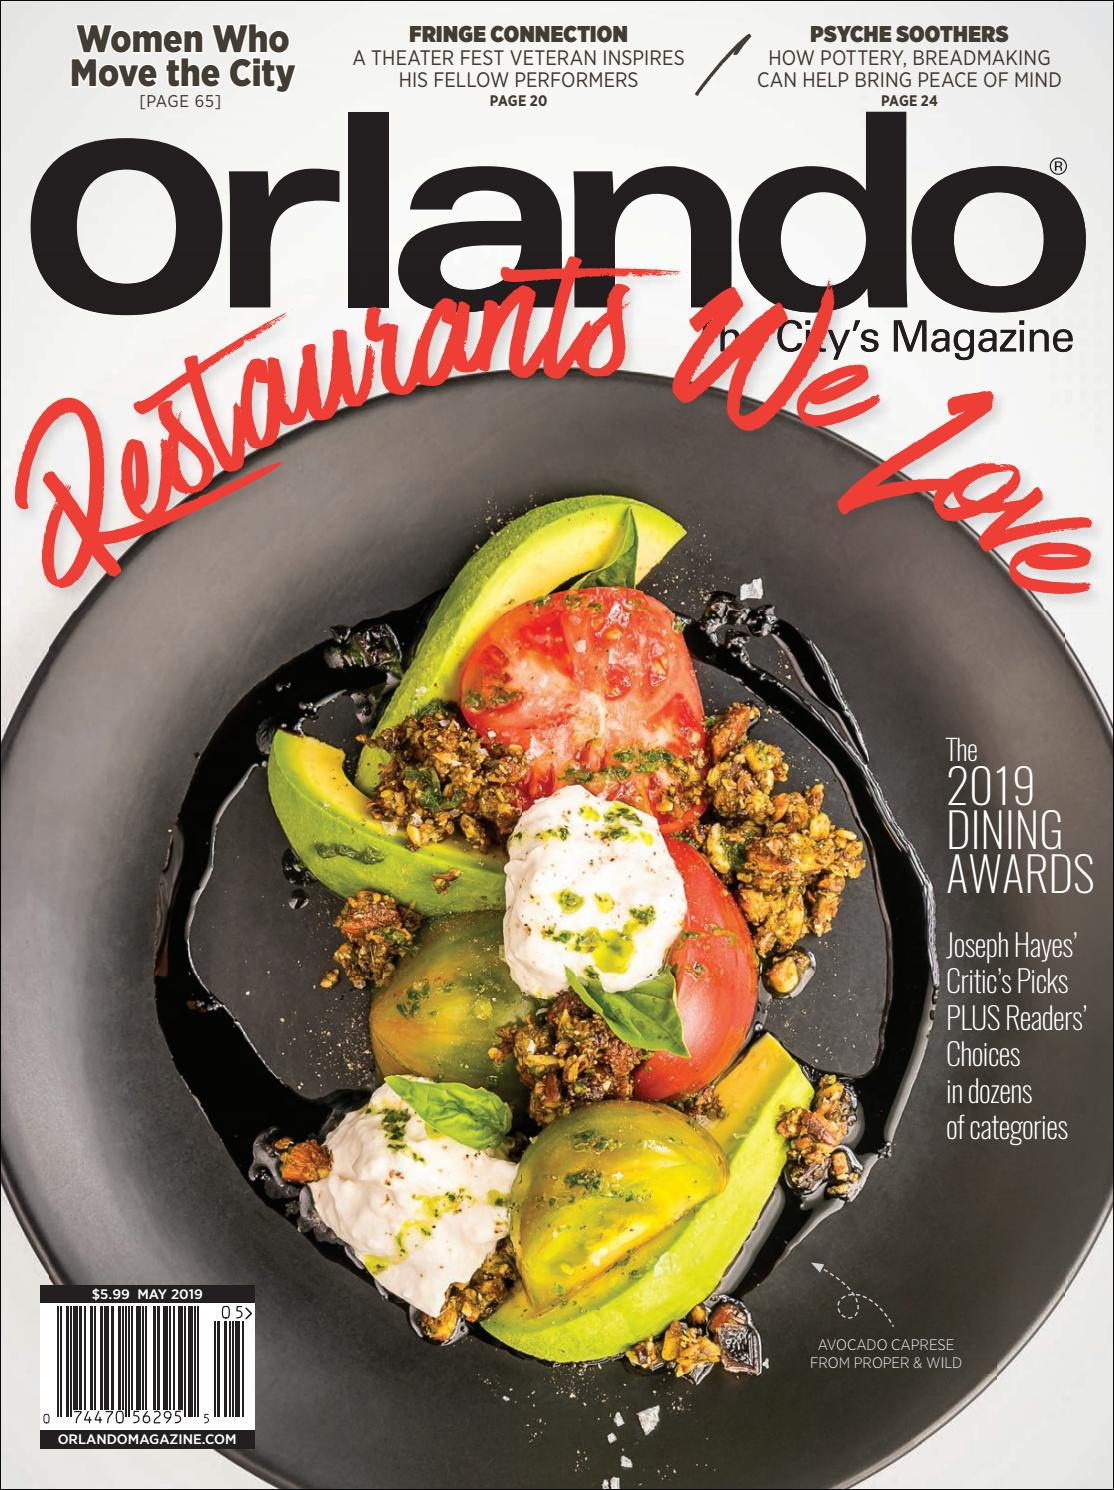 Orlando Magazine May 2019 by Morris Media Network - issuu